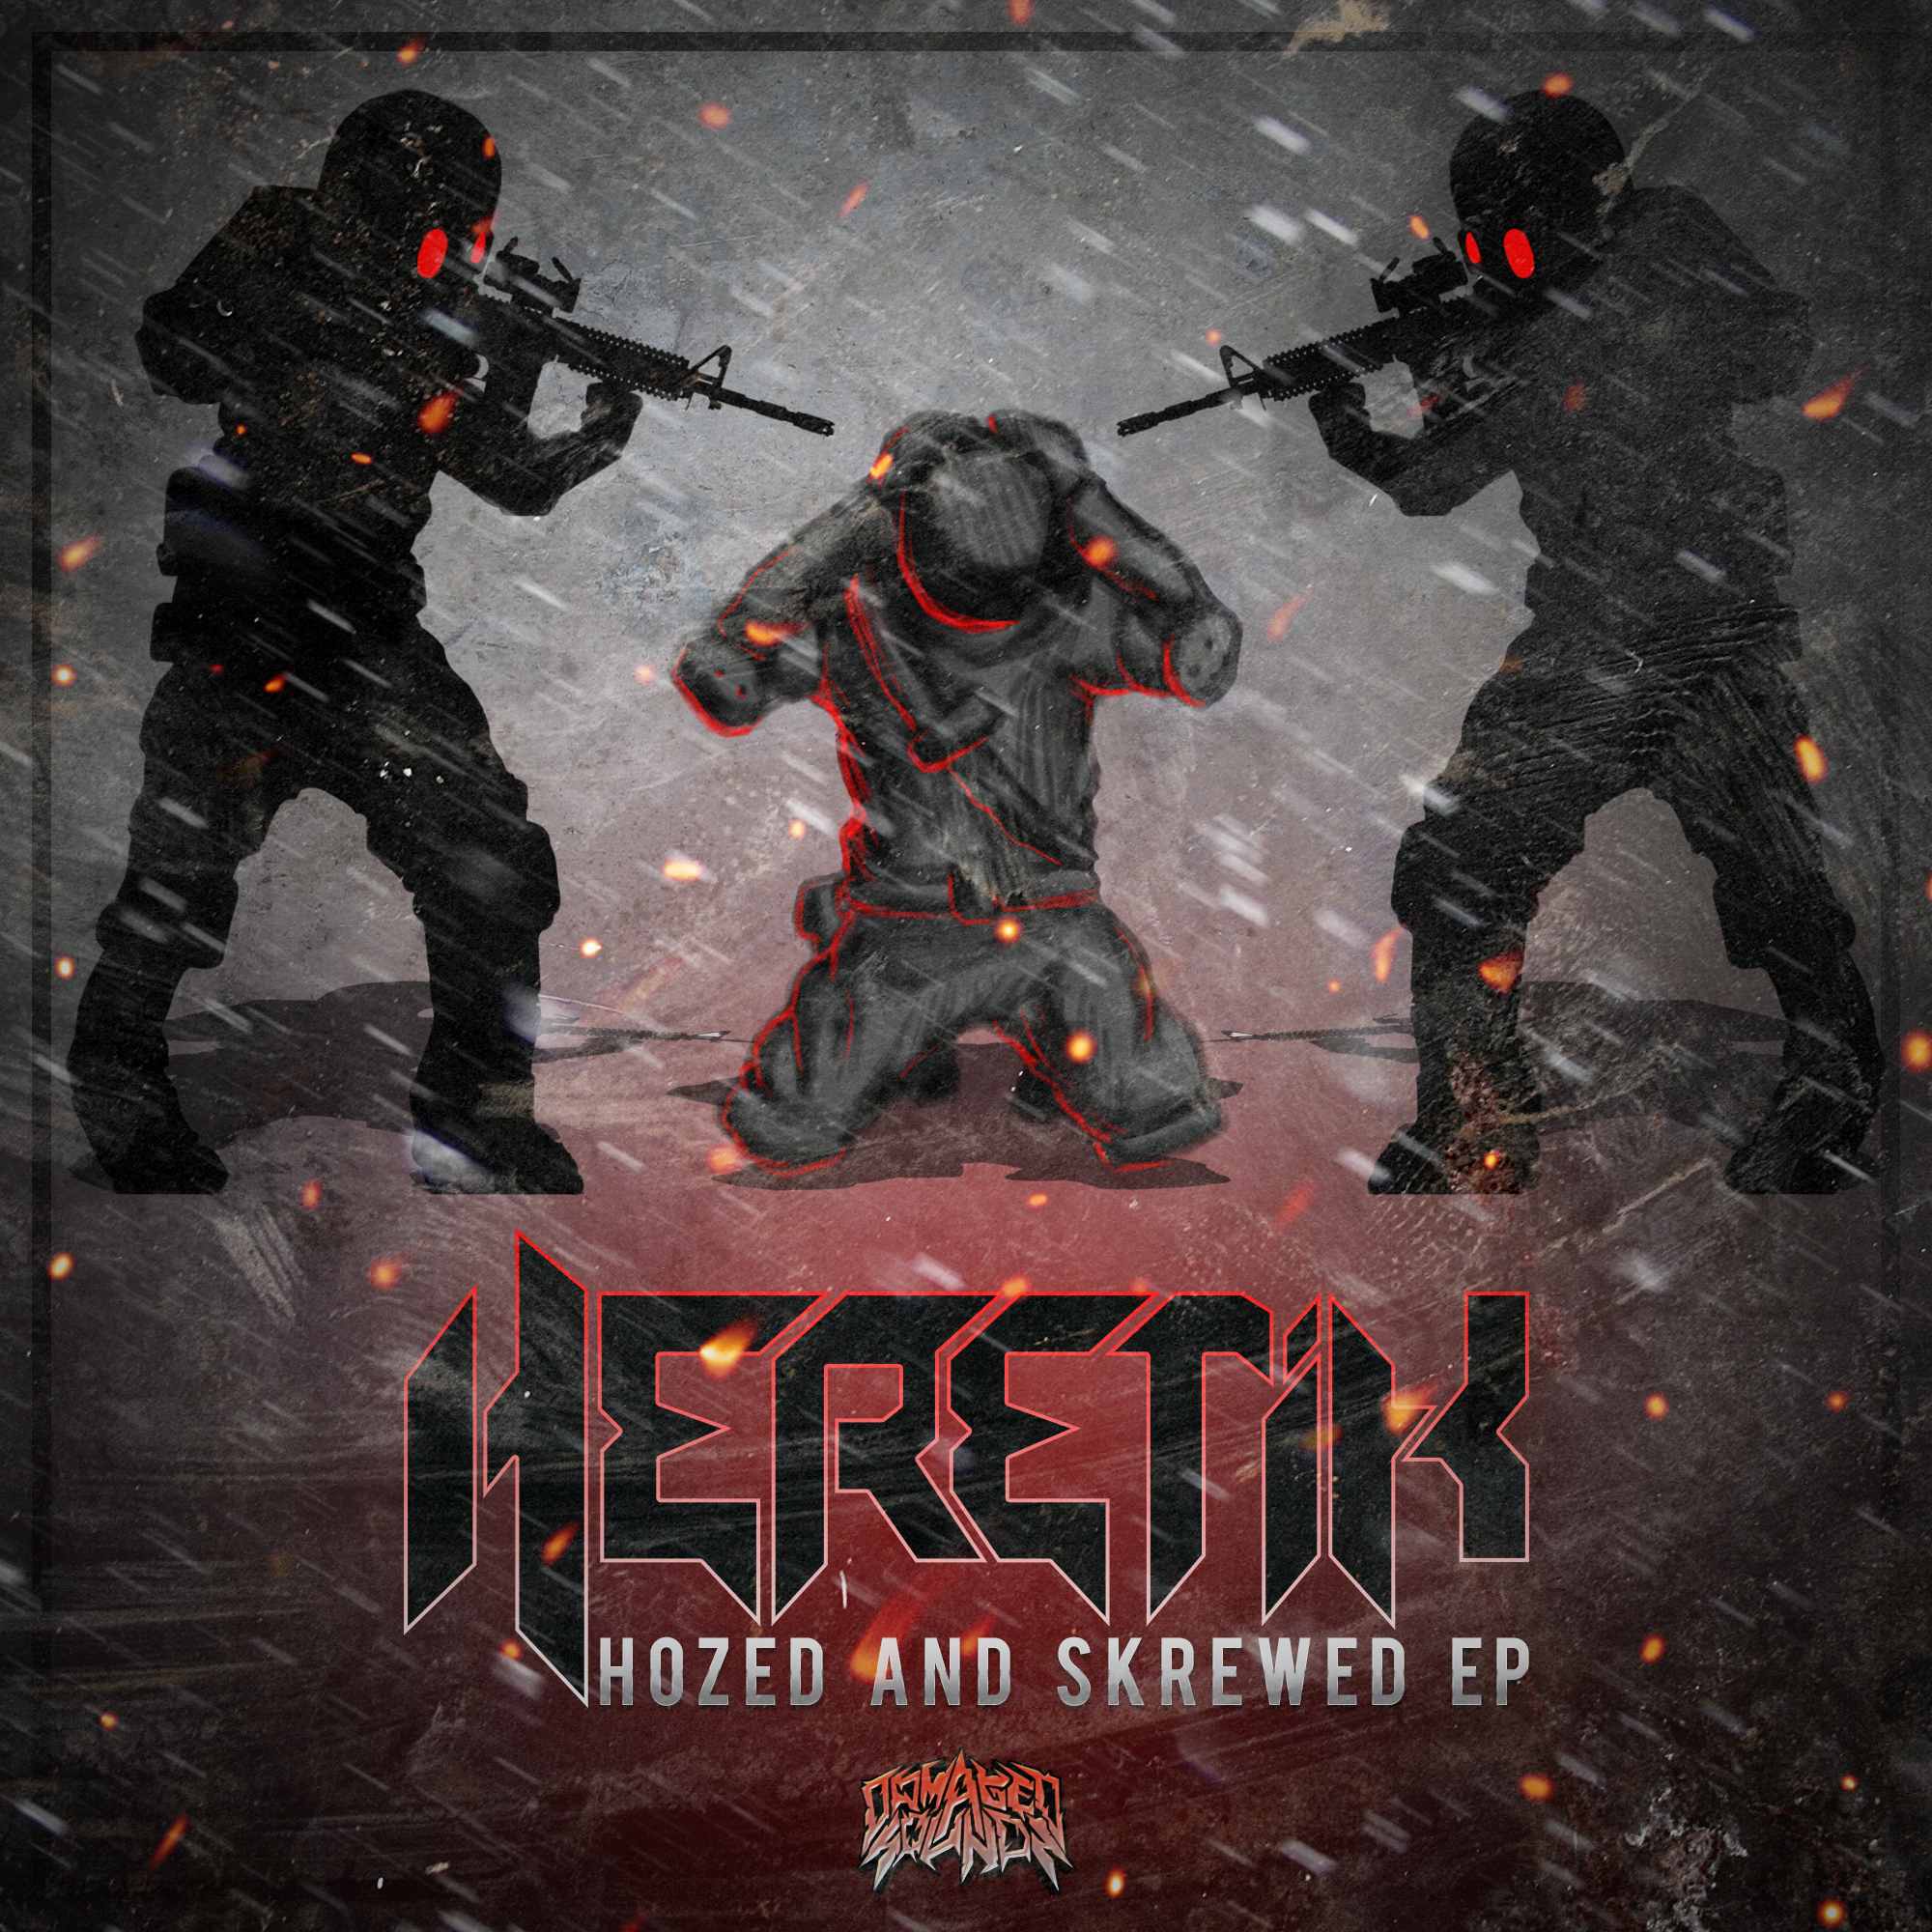 Heretik - Hozed And Skrewed EP